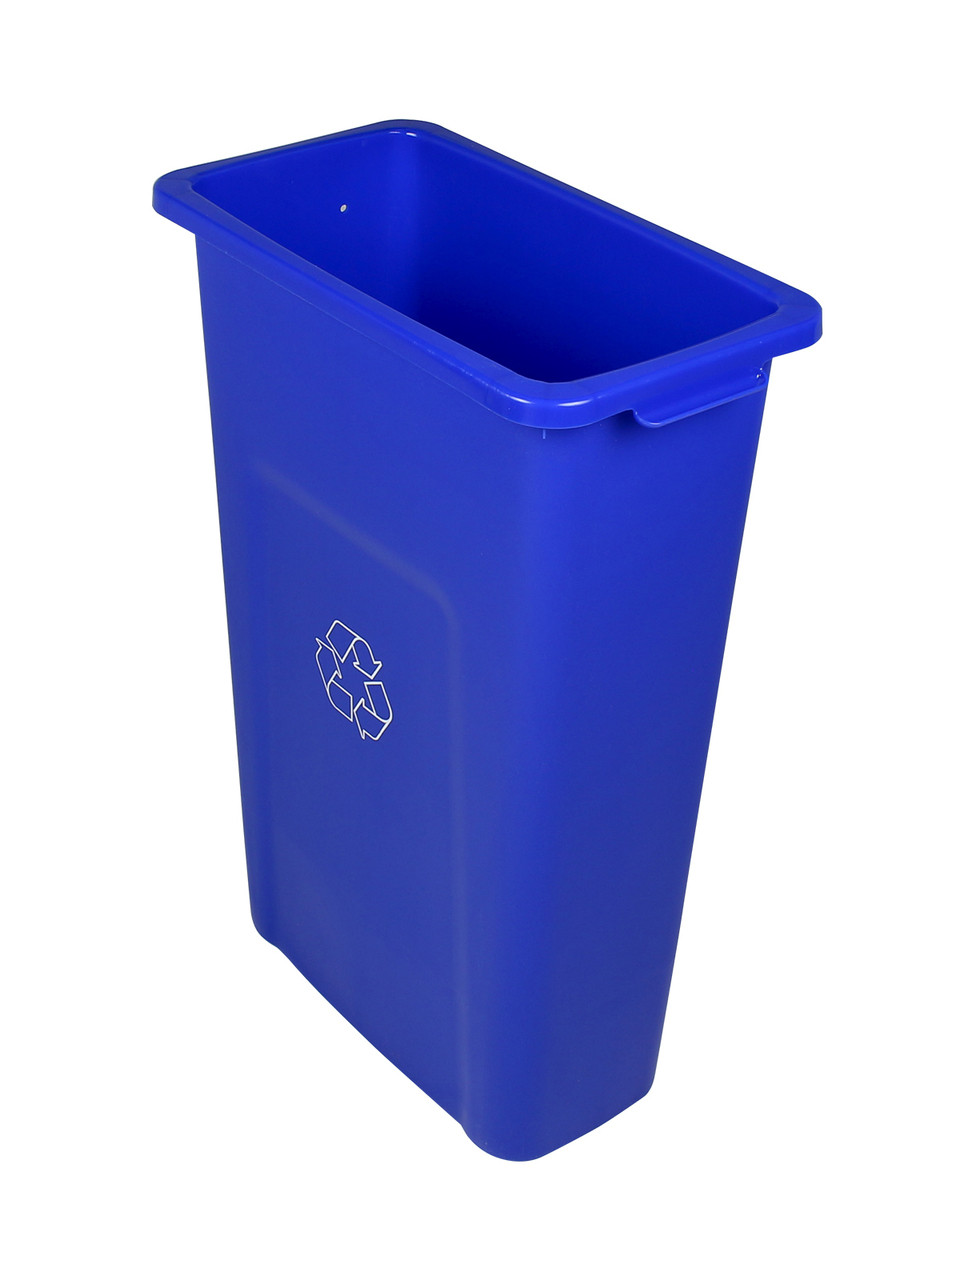 23 Gallon Skinny Recycling Bin Pre-Drilled for Signs Blue